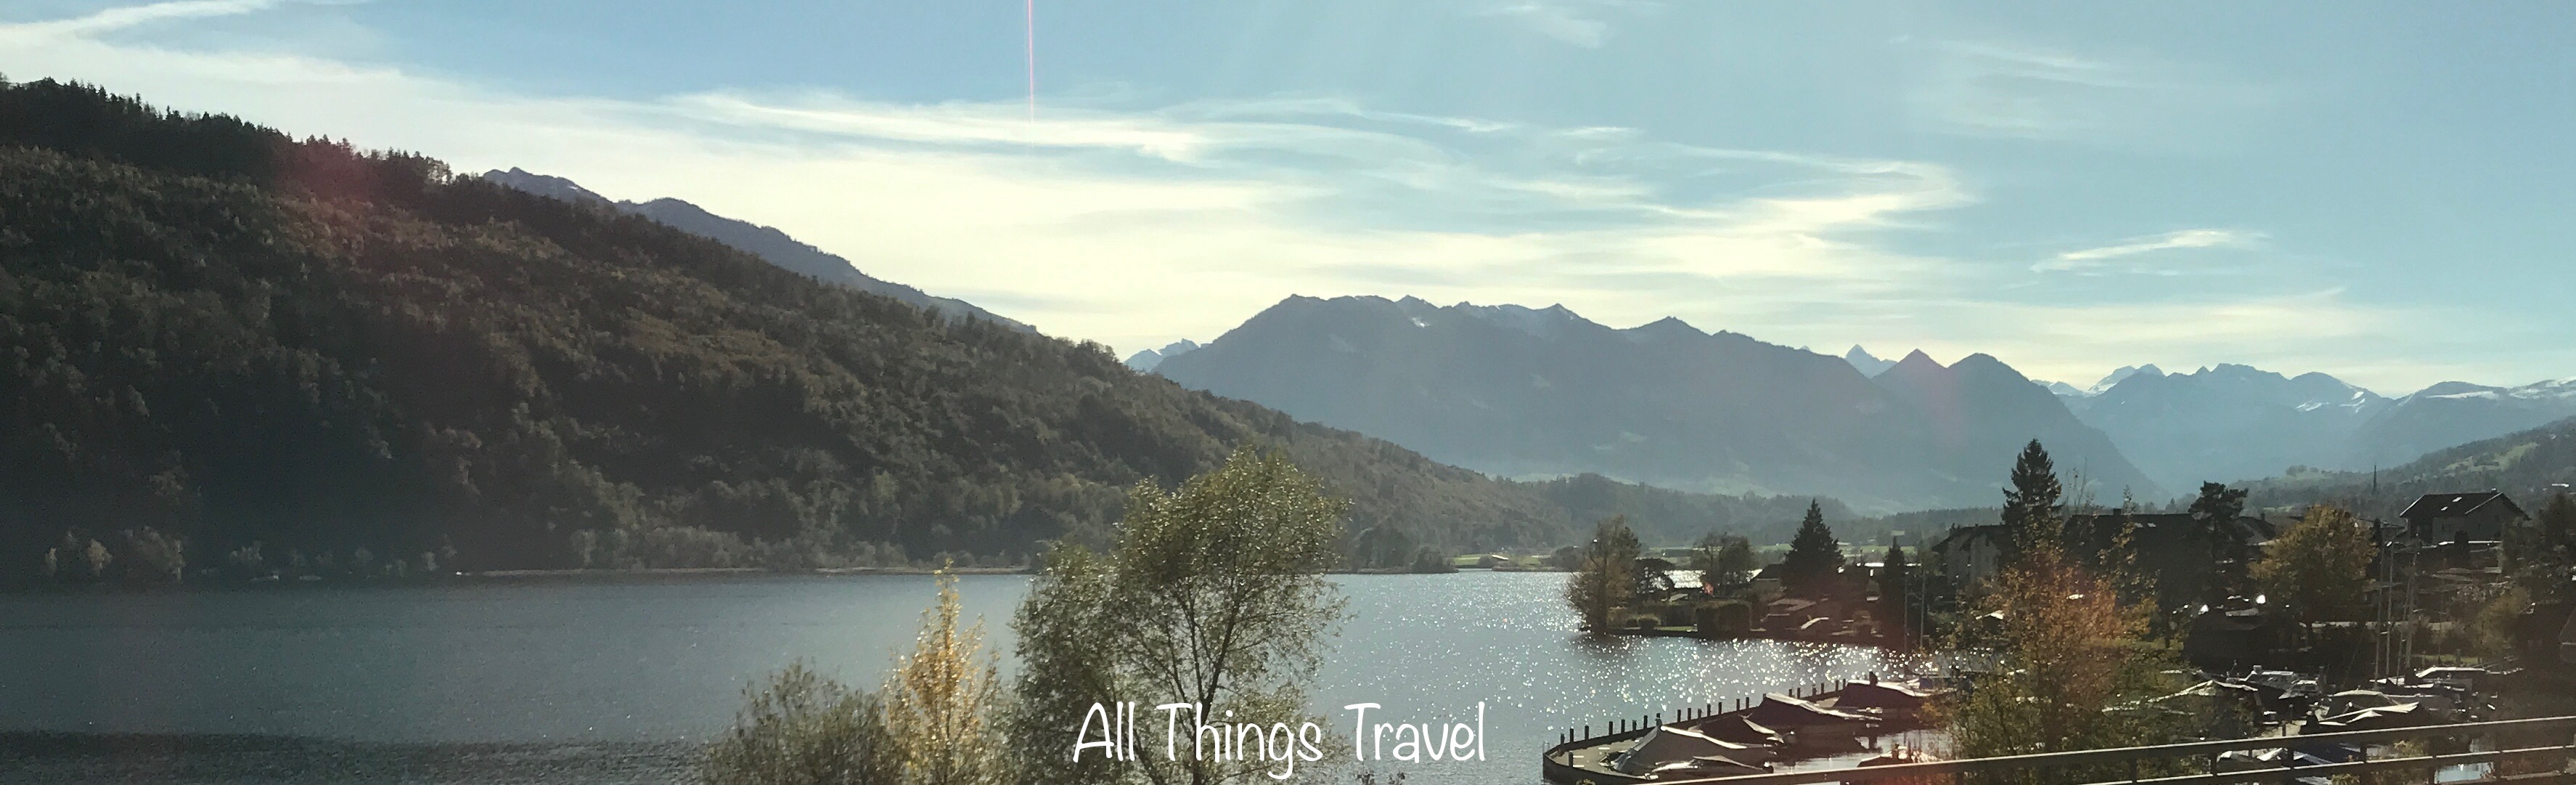 IMG_0745 & Eiger | All Things Travel